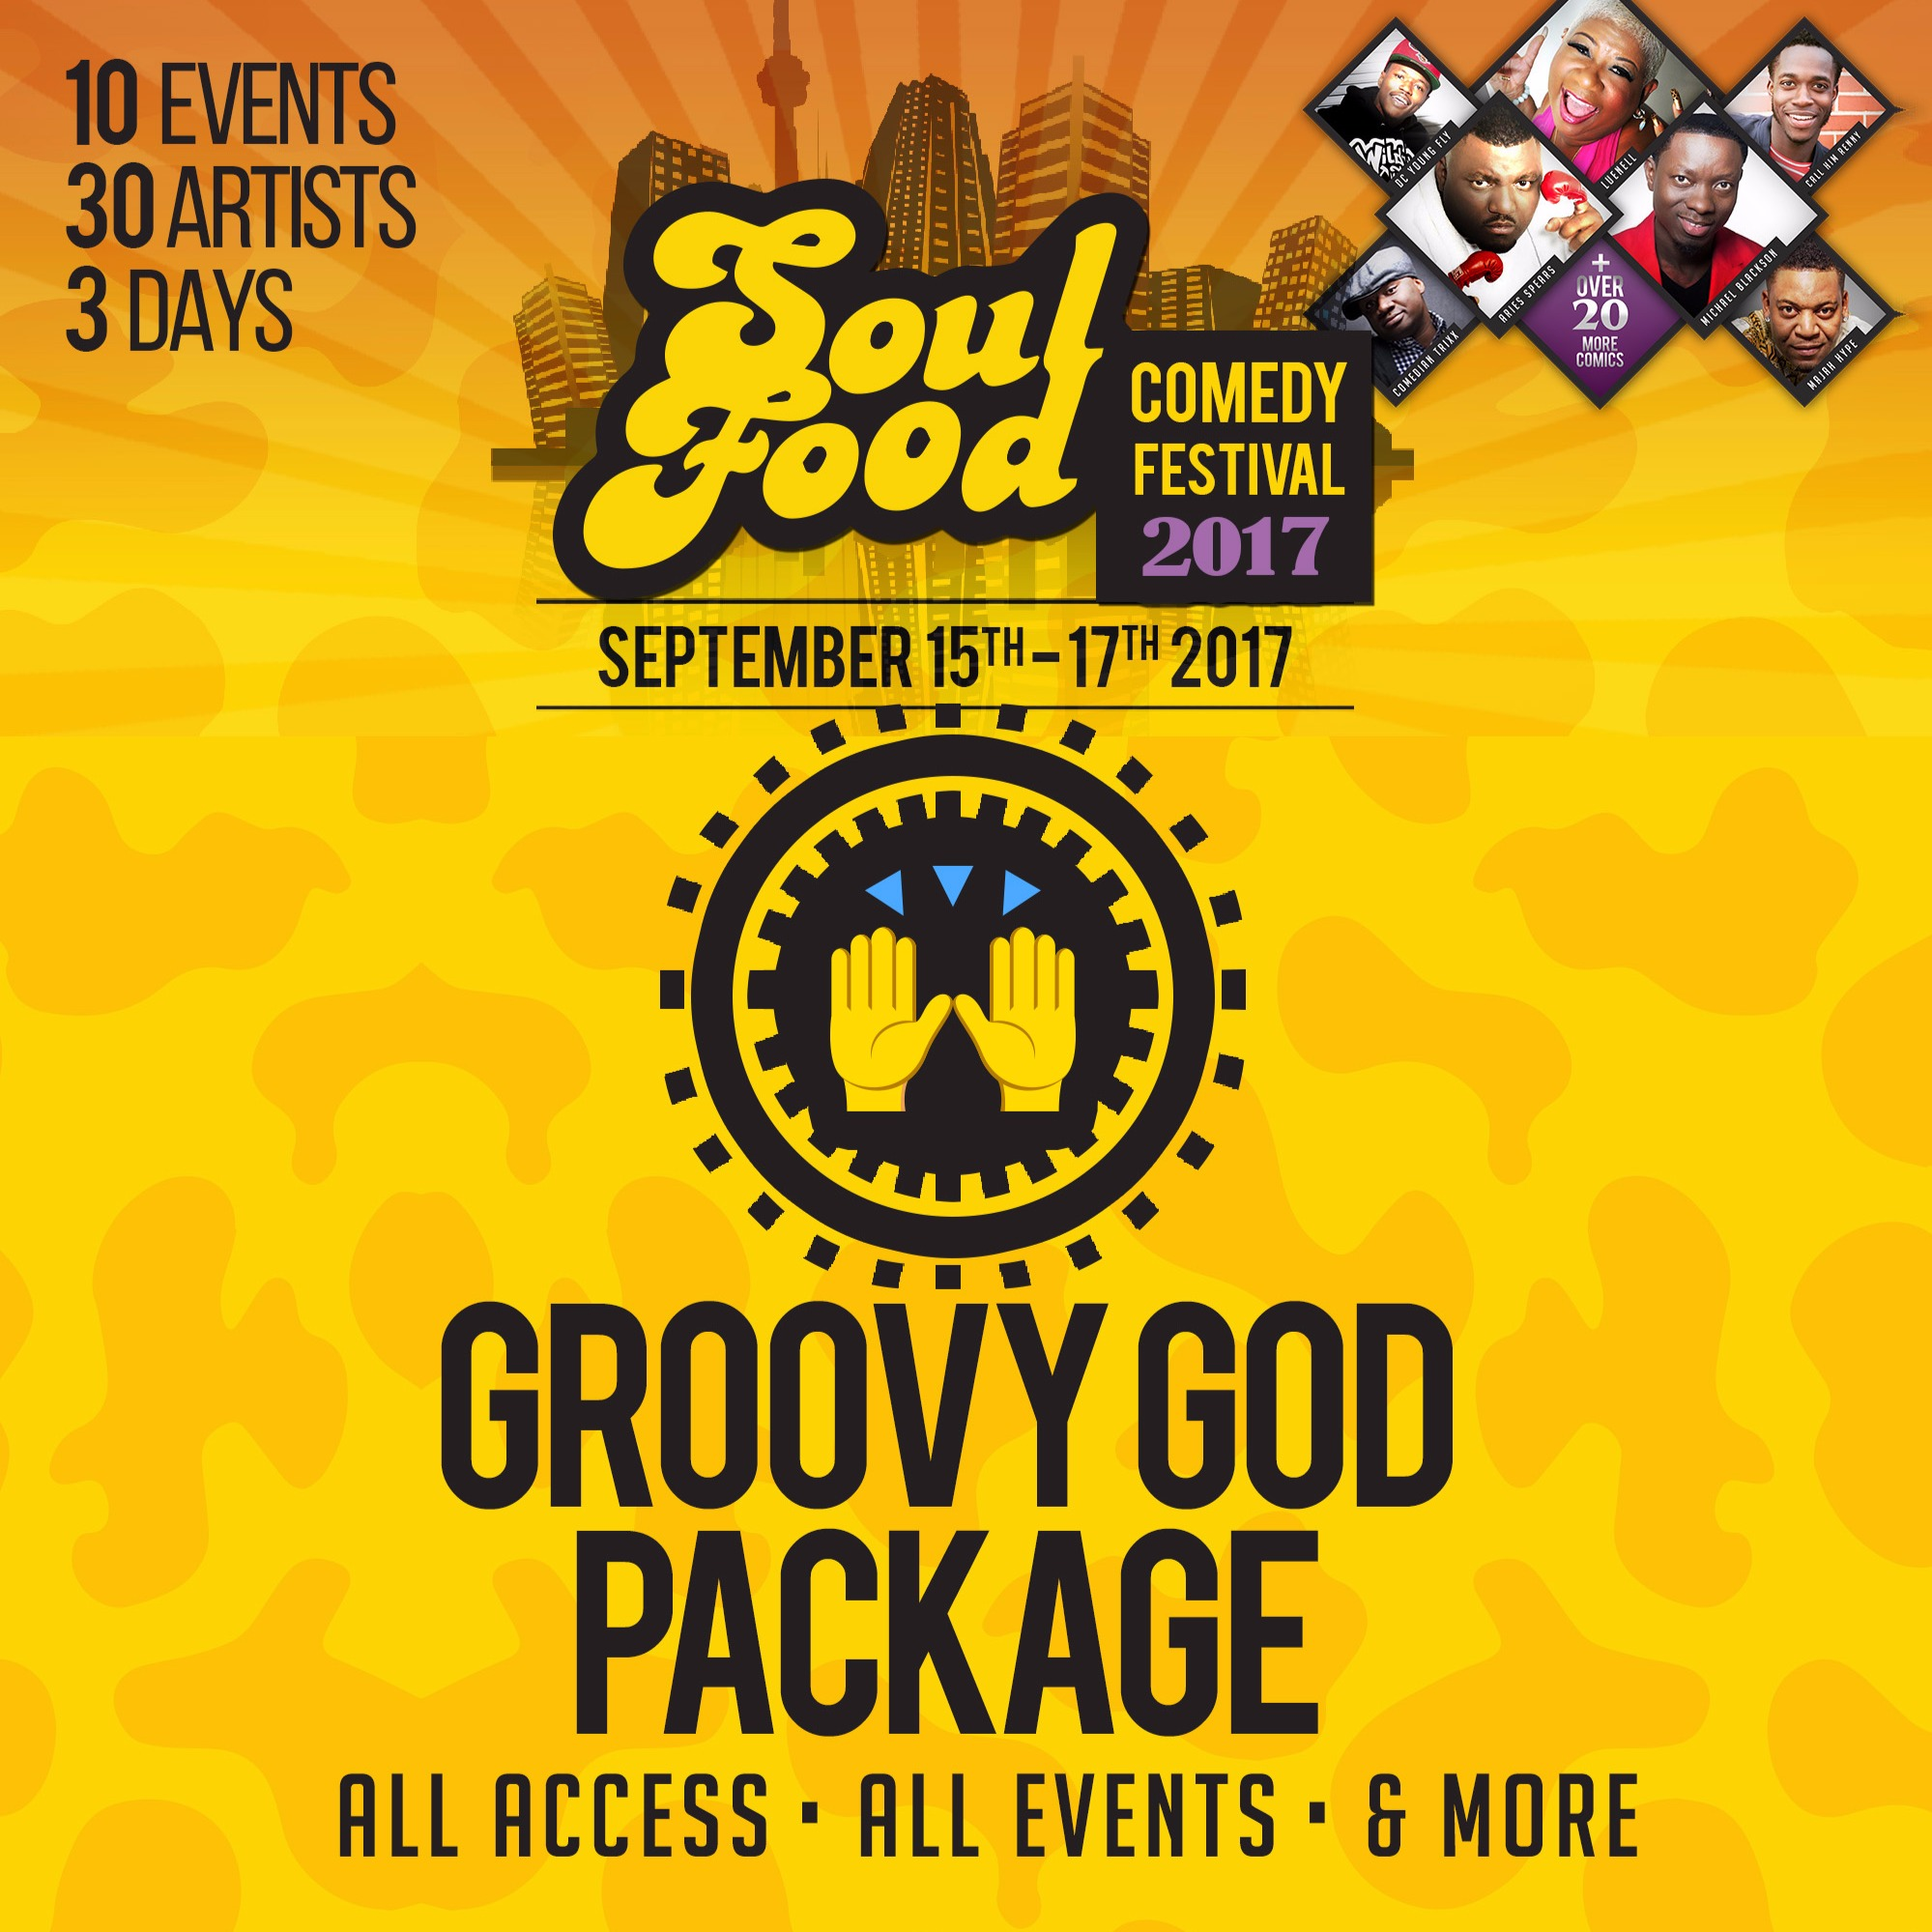 GroovyGod Package - All Access / All Events (2017 Soul Food Comedy Festival